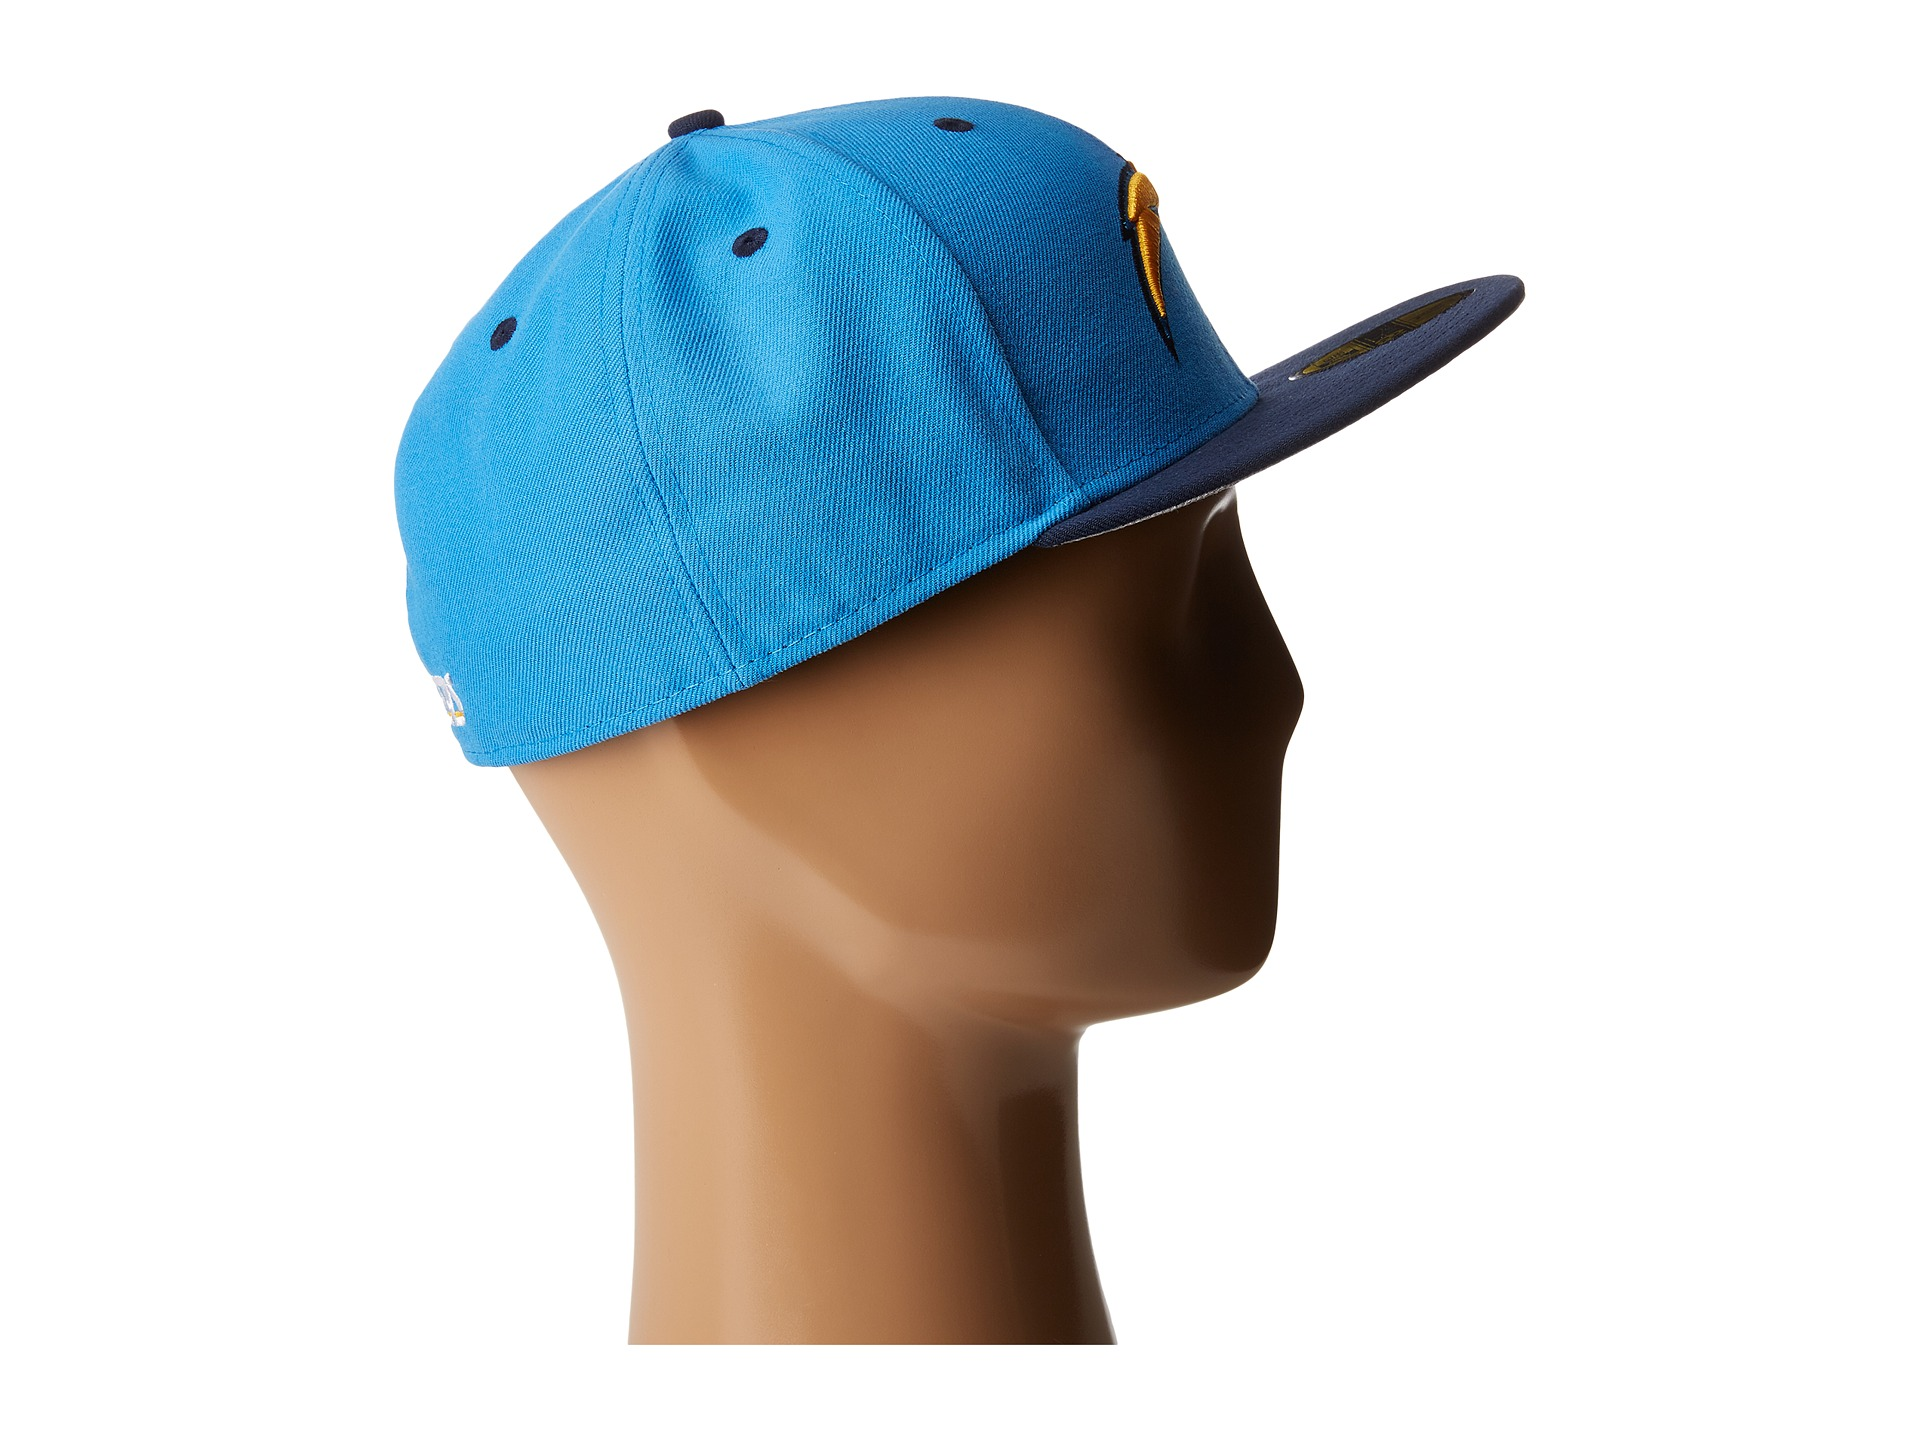 New Era Nfl Two Tone Team Los Angeles Chargers At Zappos Com